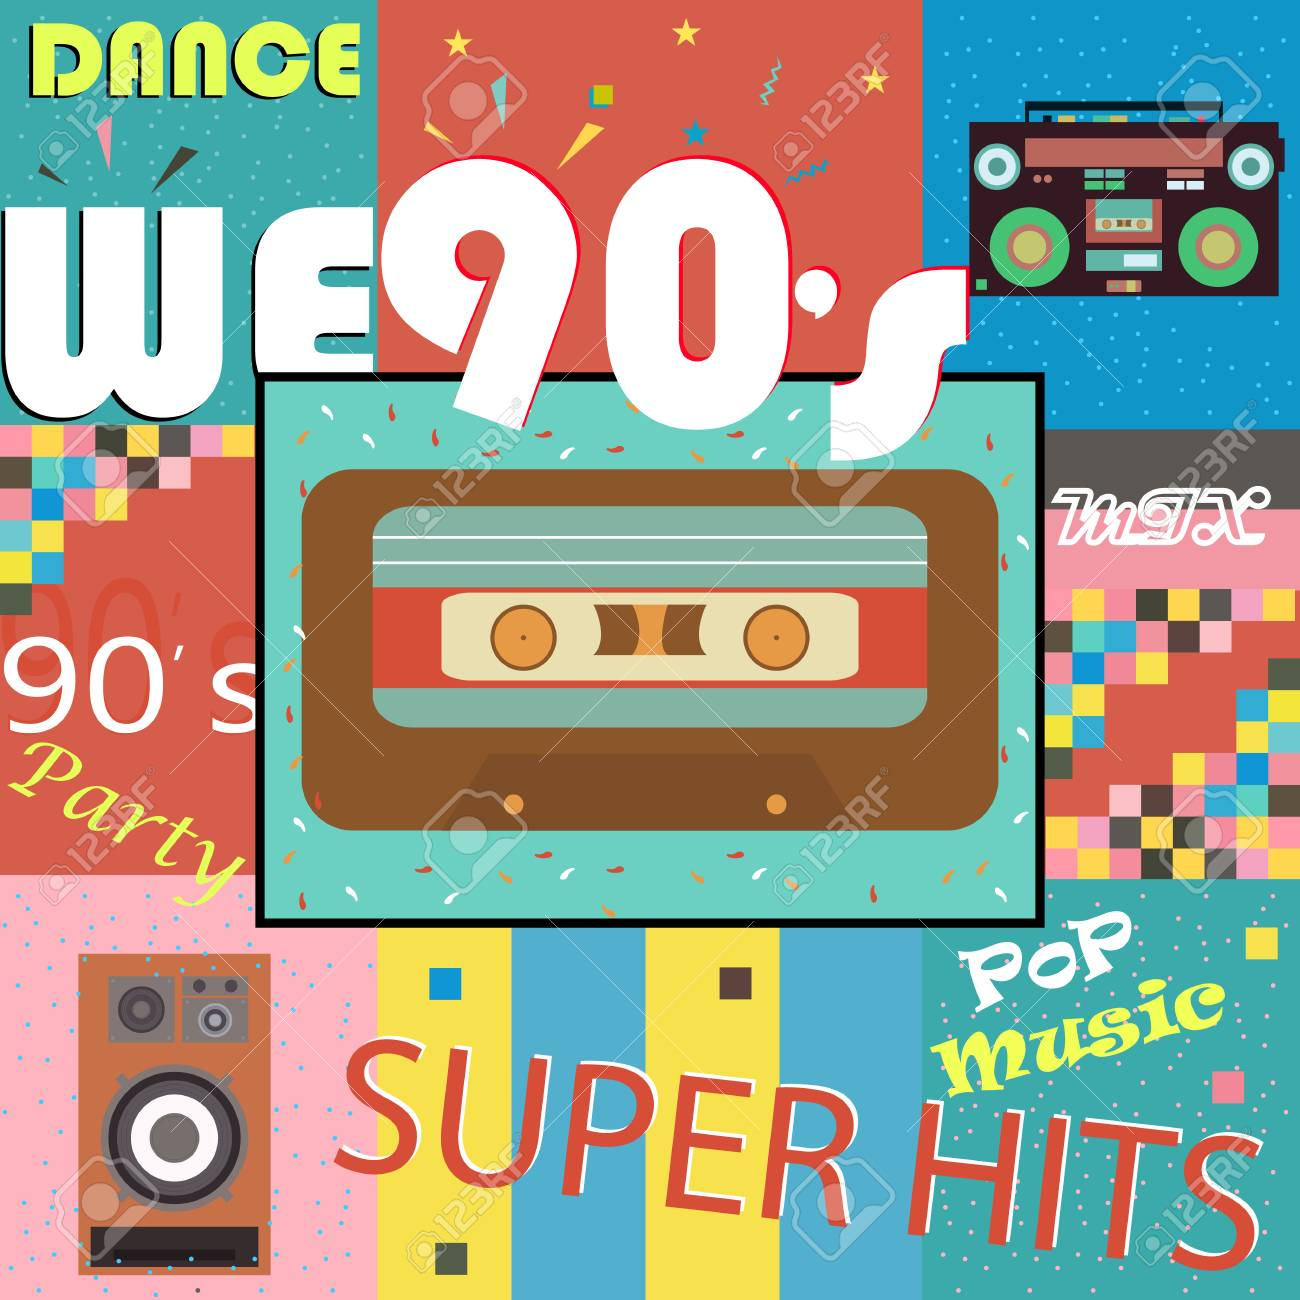 Retro-style club, background, fashion, pop music of the 90s and